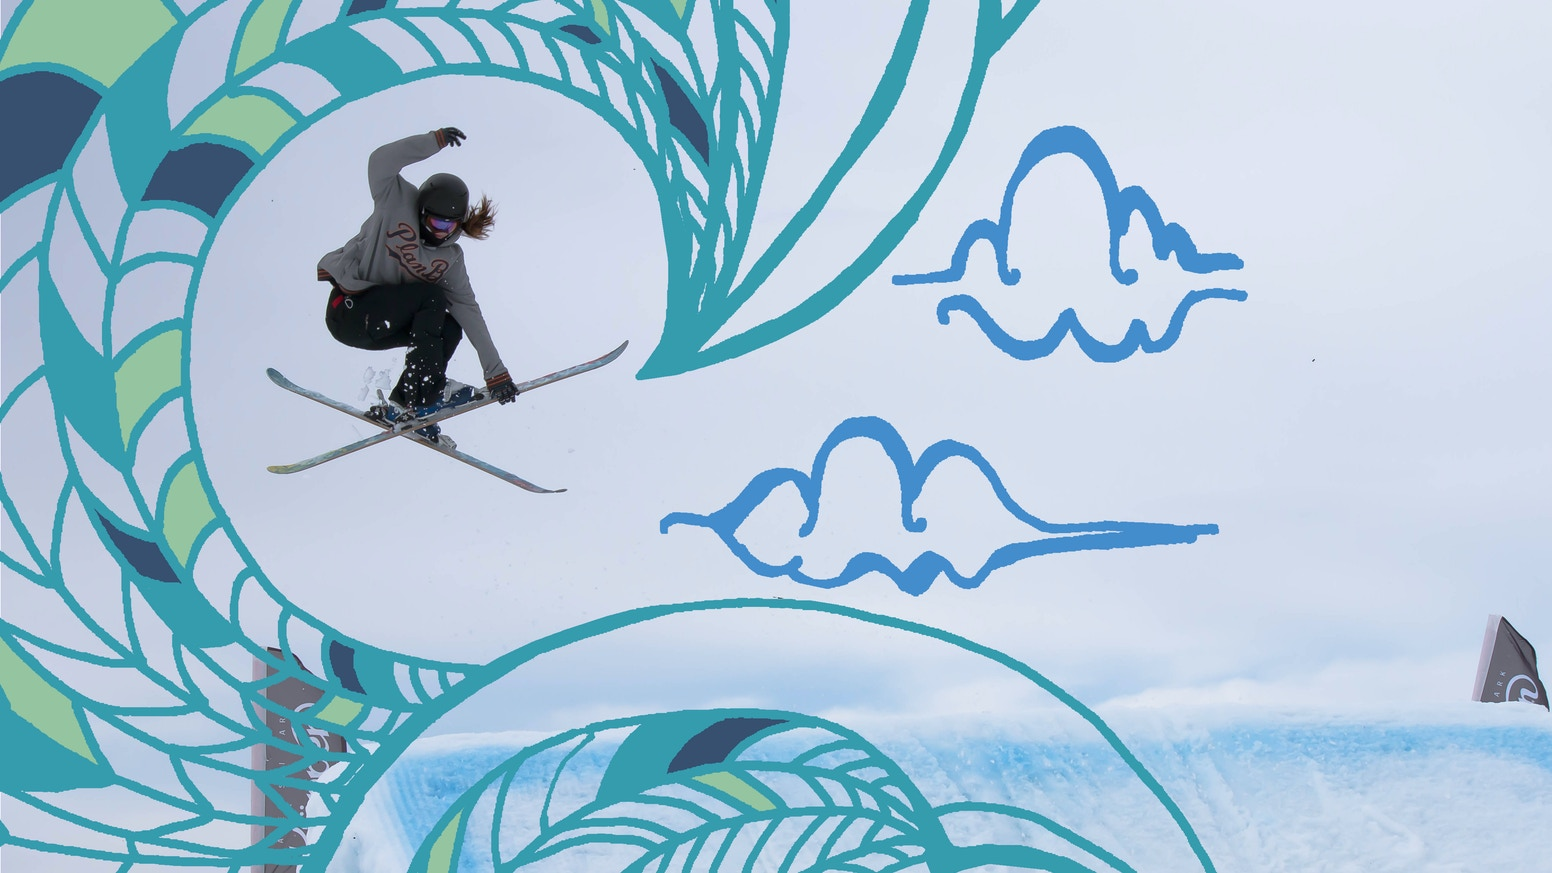 We're the ones we've been waiting for. High-performance skis and snowboards designed by women, for women.